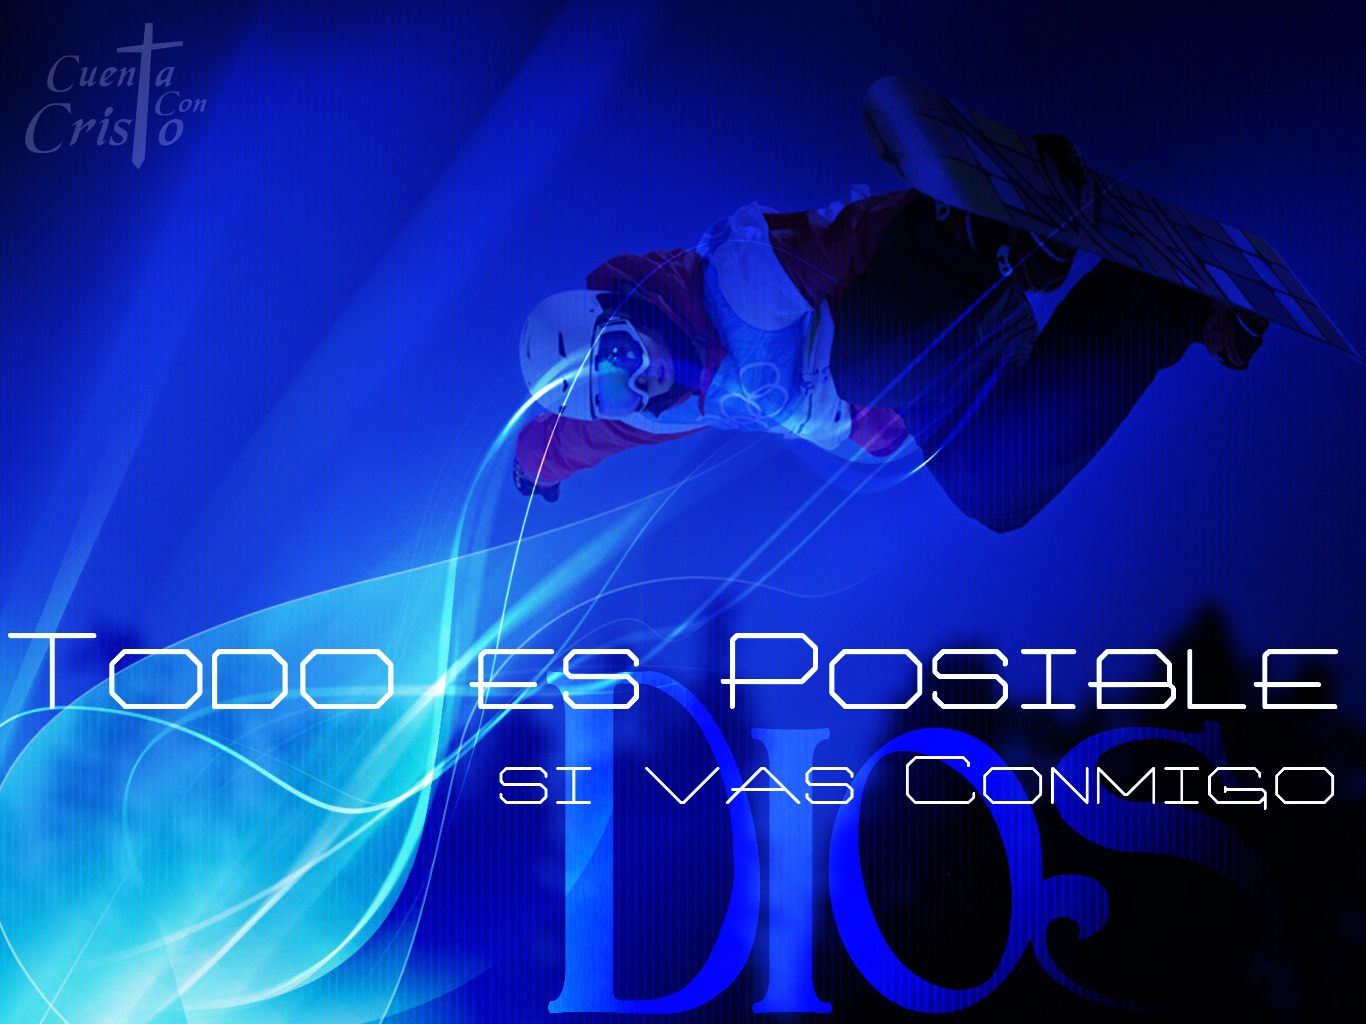 Wallpapers Cristianos Juveniles Imagenes Mil Picture